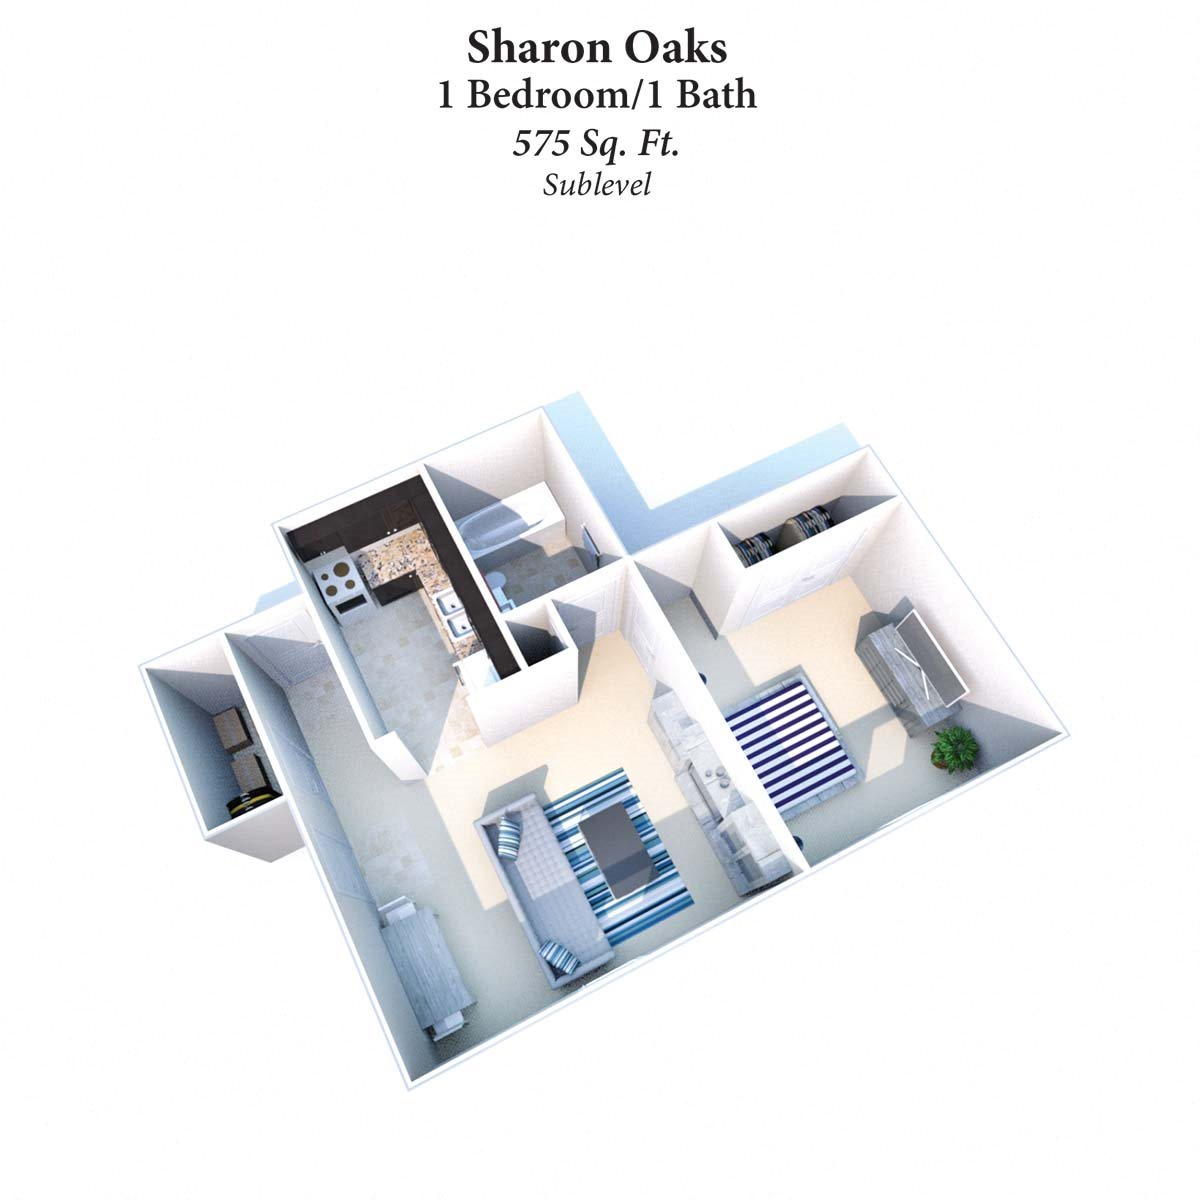 1B/1B Sharon Oaks 575SqFt Floor Plan 1